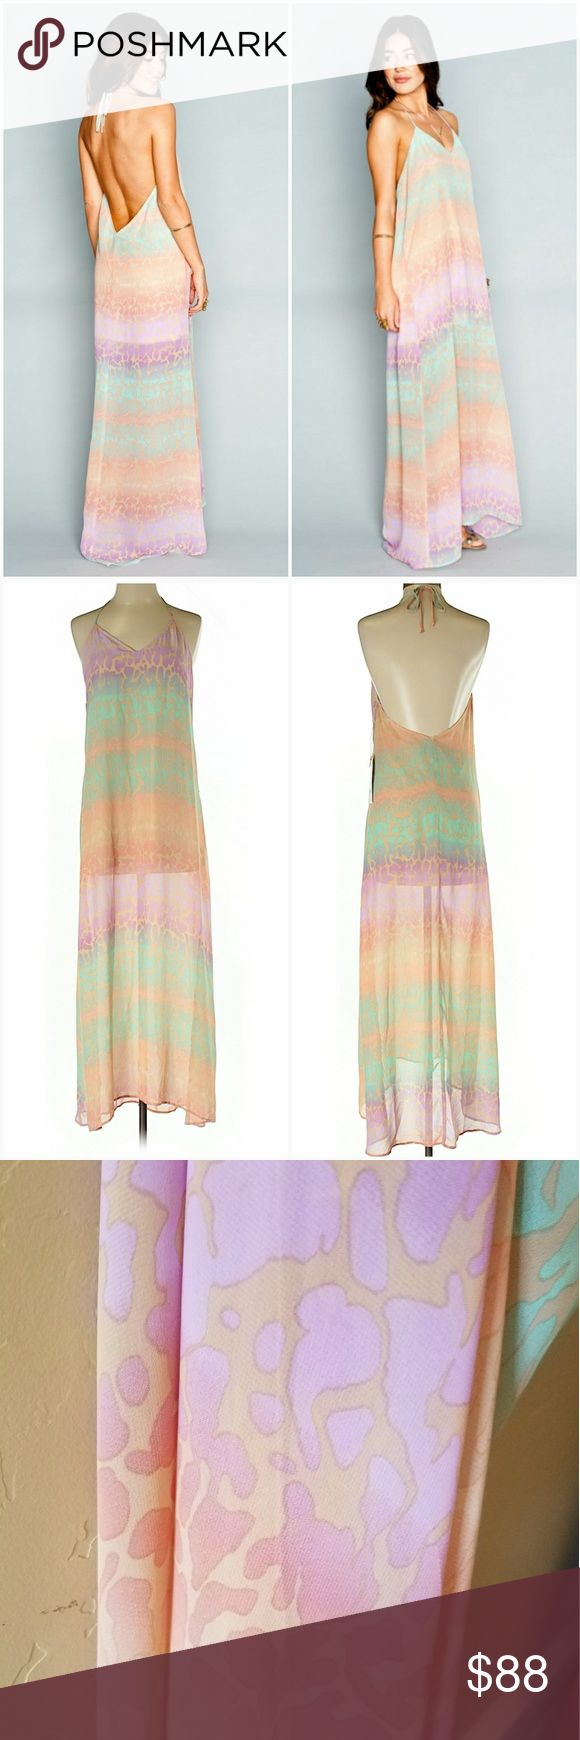 """NWT Erlyn Maxi Dress SayUCheetah Halter Animal Erlyn can't enter a room w/o tuning heads. She has mastered ultimate elegance while having the biggest smile. V'ed neckline in the front and a deep V to open the back up. You will feel absolutely divine in the Erlyn Maxi Dress. Peach, lavender, and mint green spots make her the cutest cat in all of Mumu Land.  * New with tags.  * MADE IN THE GORGE USA * 100% Poly Chiffon  * Semi-Sheer  * Ties at neck  * Basically Wrinkle-proof * 48.25"""" length…"""